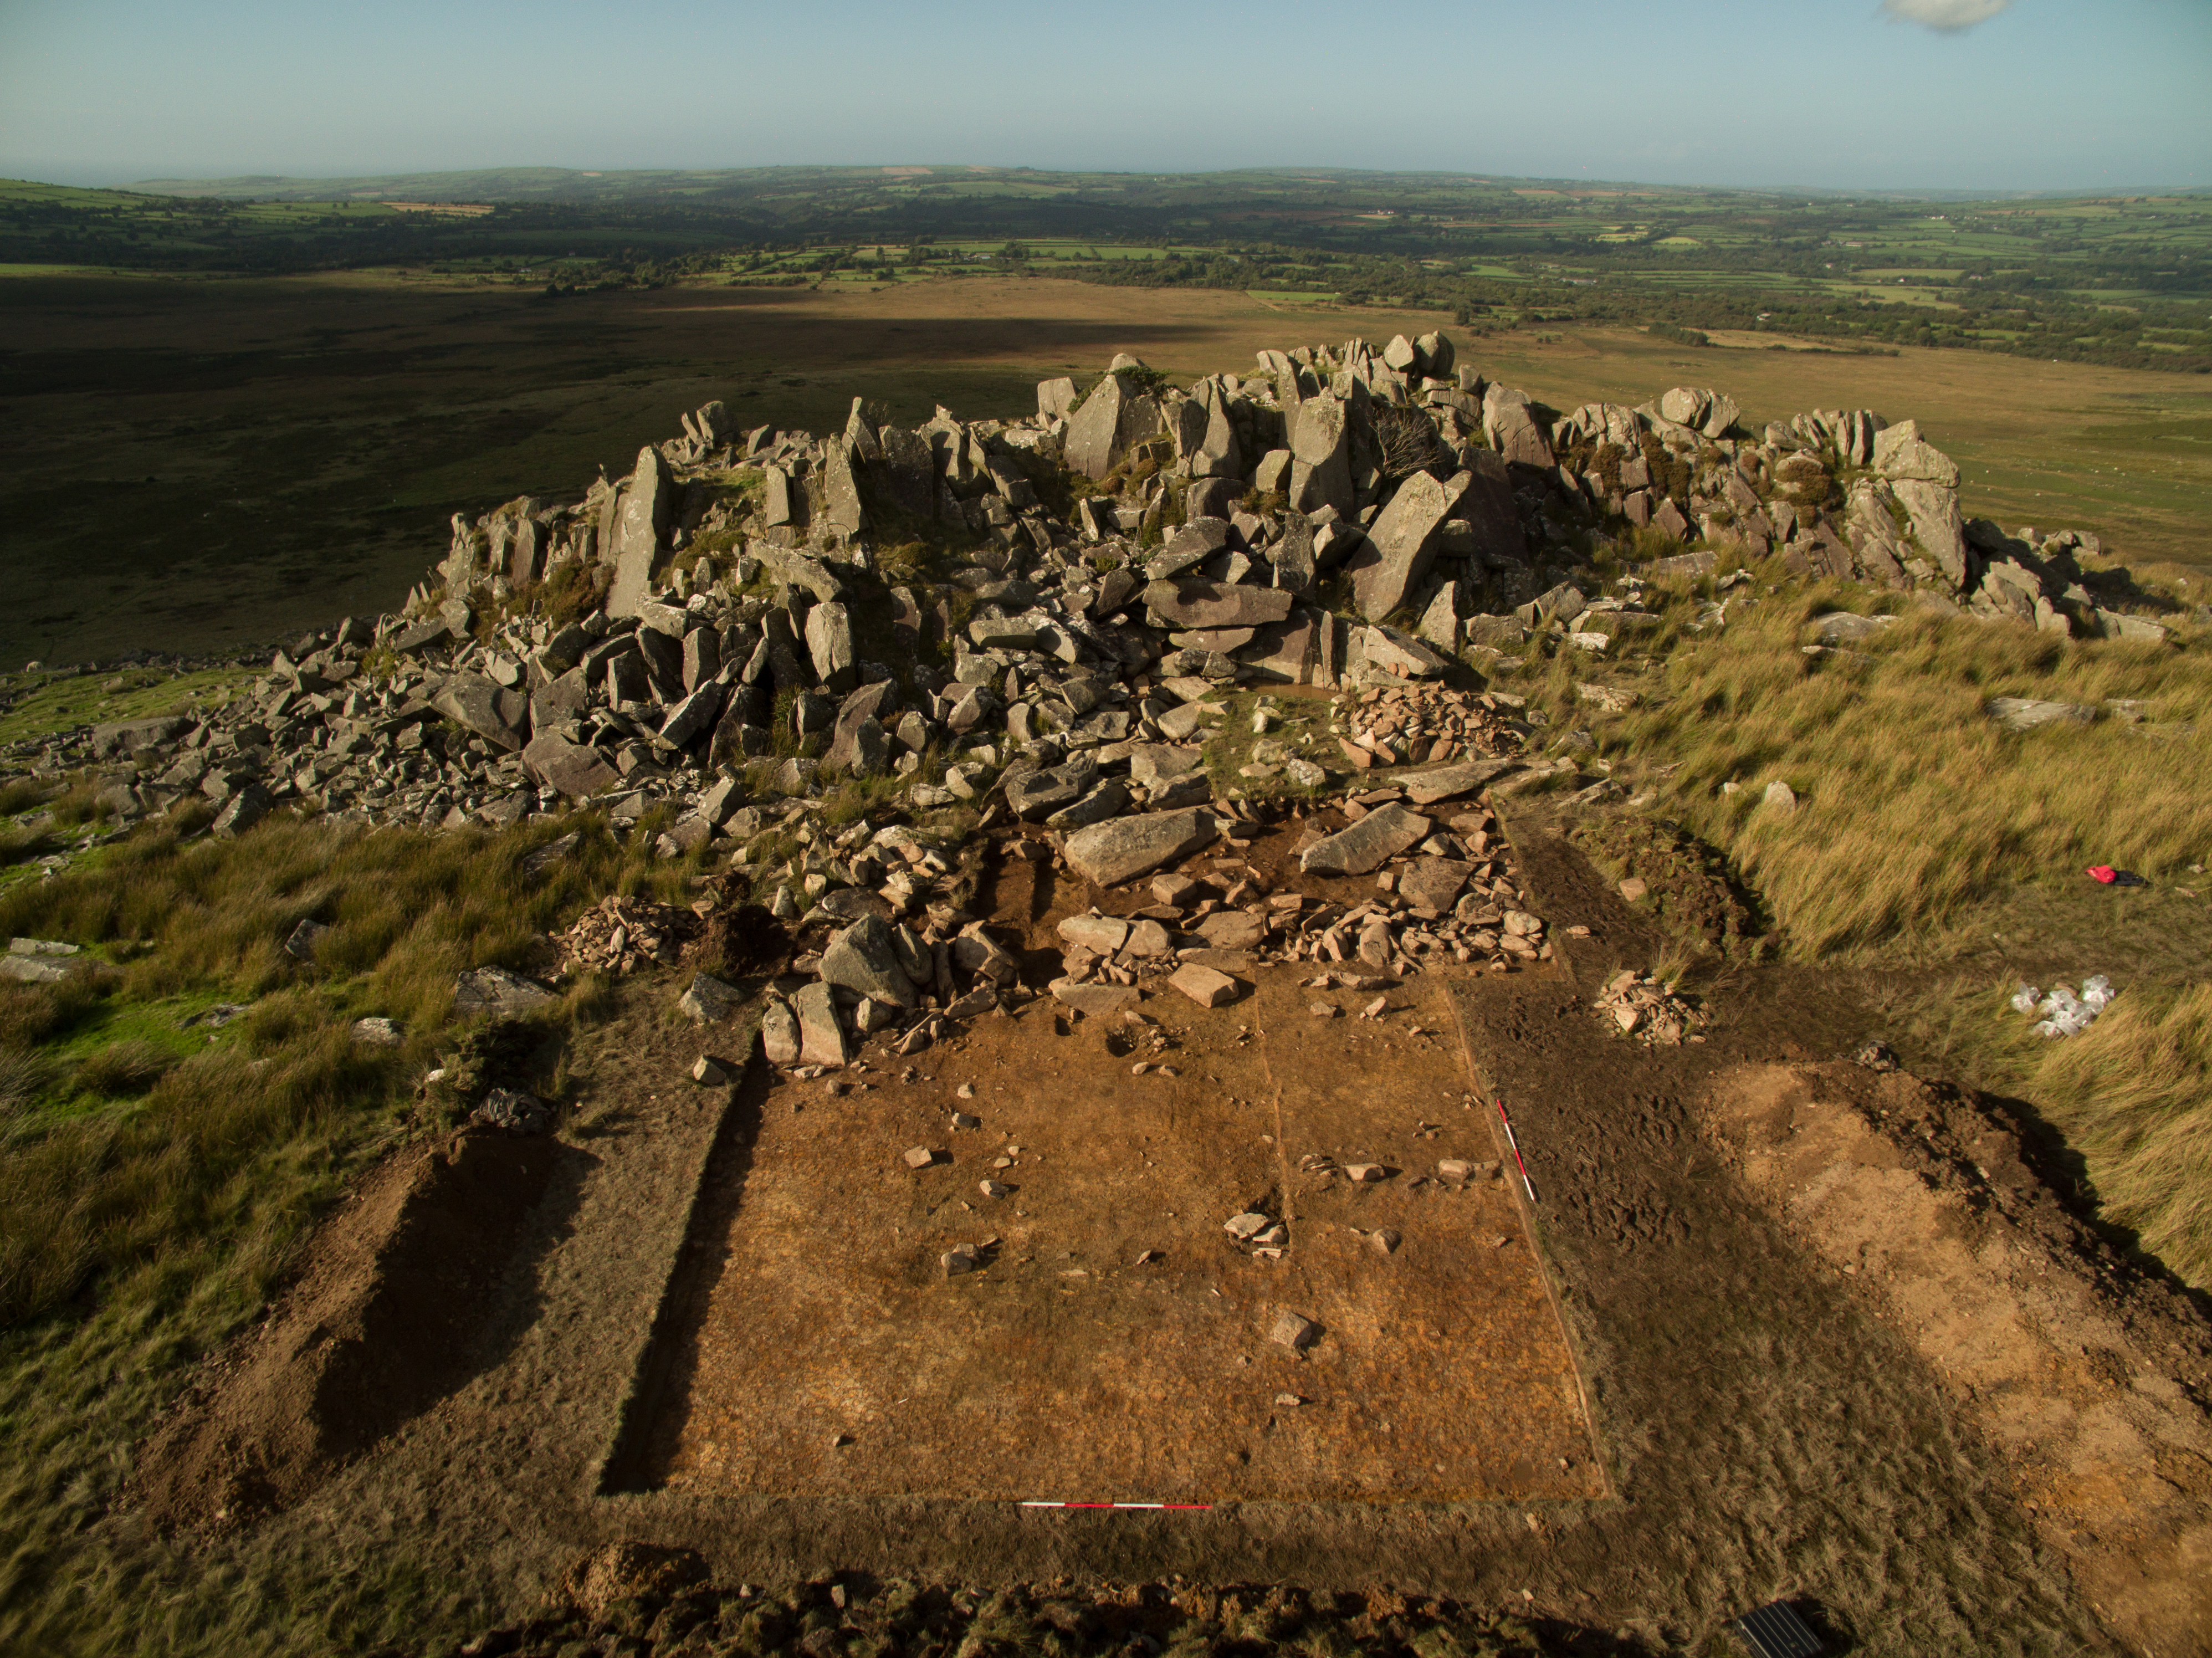 Carn Goedog, source of spotted dolerite bluestones erected in the early stage of Stonehenge's construction.